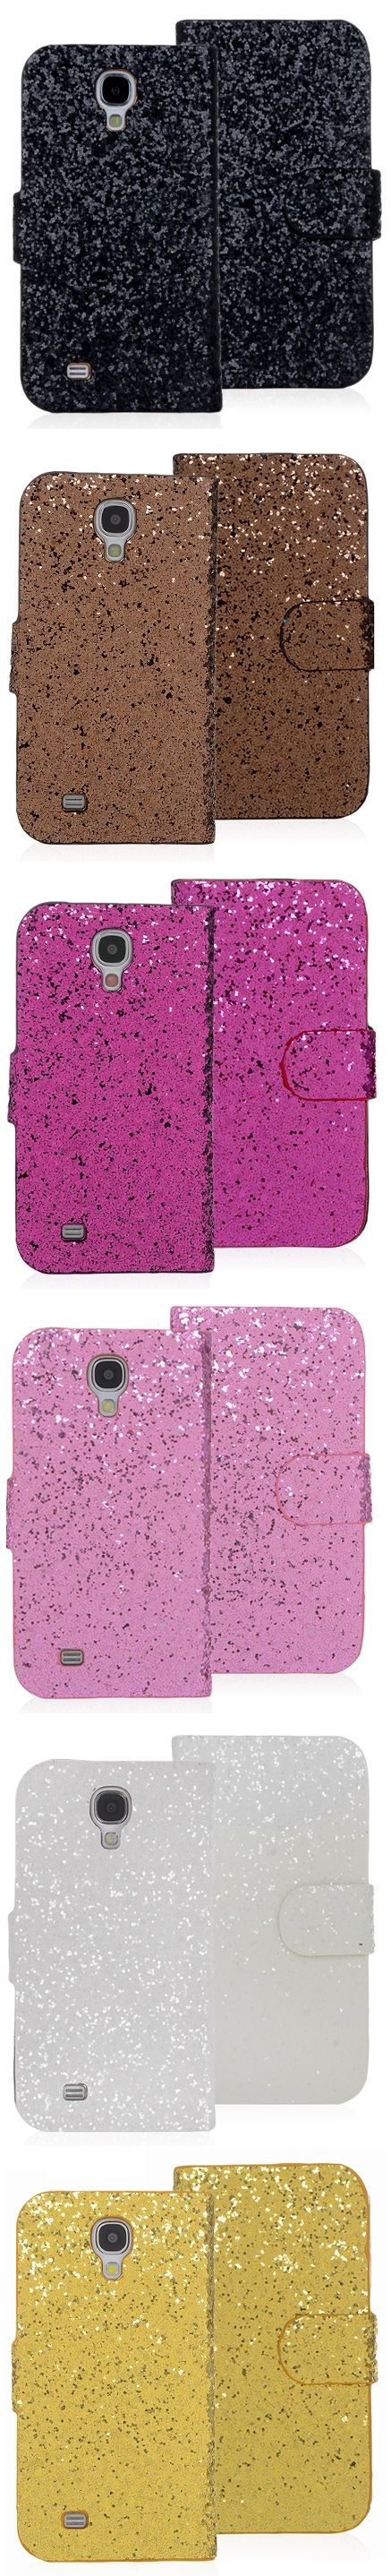 Fashion Glittering PU Leather Shiny Wallet Case Cover For Samsung Galaxy S4 S IV i9500 Solid Metallic Galaxy S4 Case Metal Finish Back Cover Case For Samsung Galaxy S4 S IV i9500 $8.72 #samsungcase #galaxyS4 #samsung #covercases #protectivecase #galaxyS4case #android #cellz.com #bestcases #freeshipping #discount #promotioncases #fashion #smartphone #accessories #glamour #glittercases